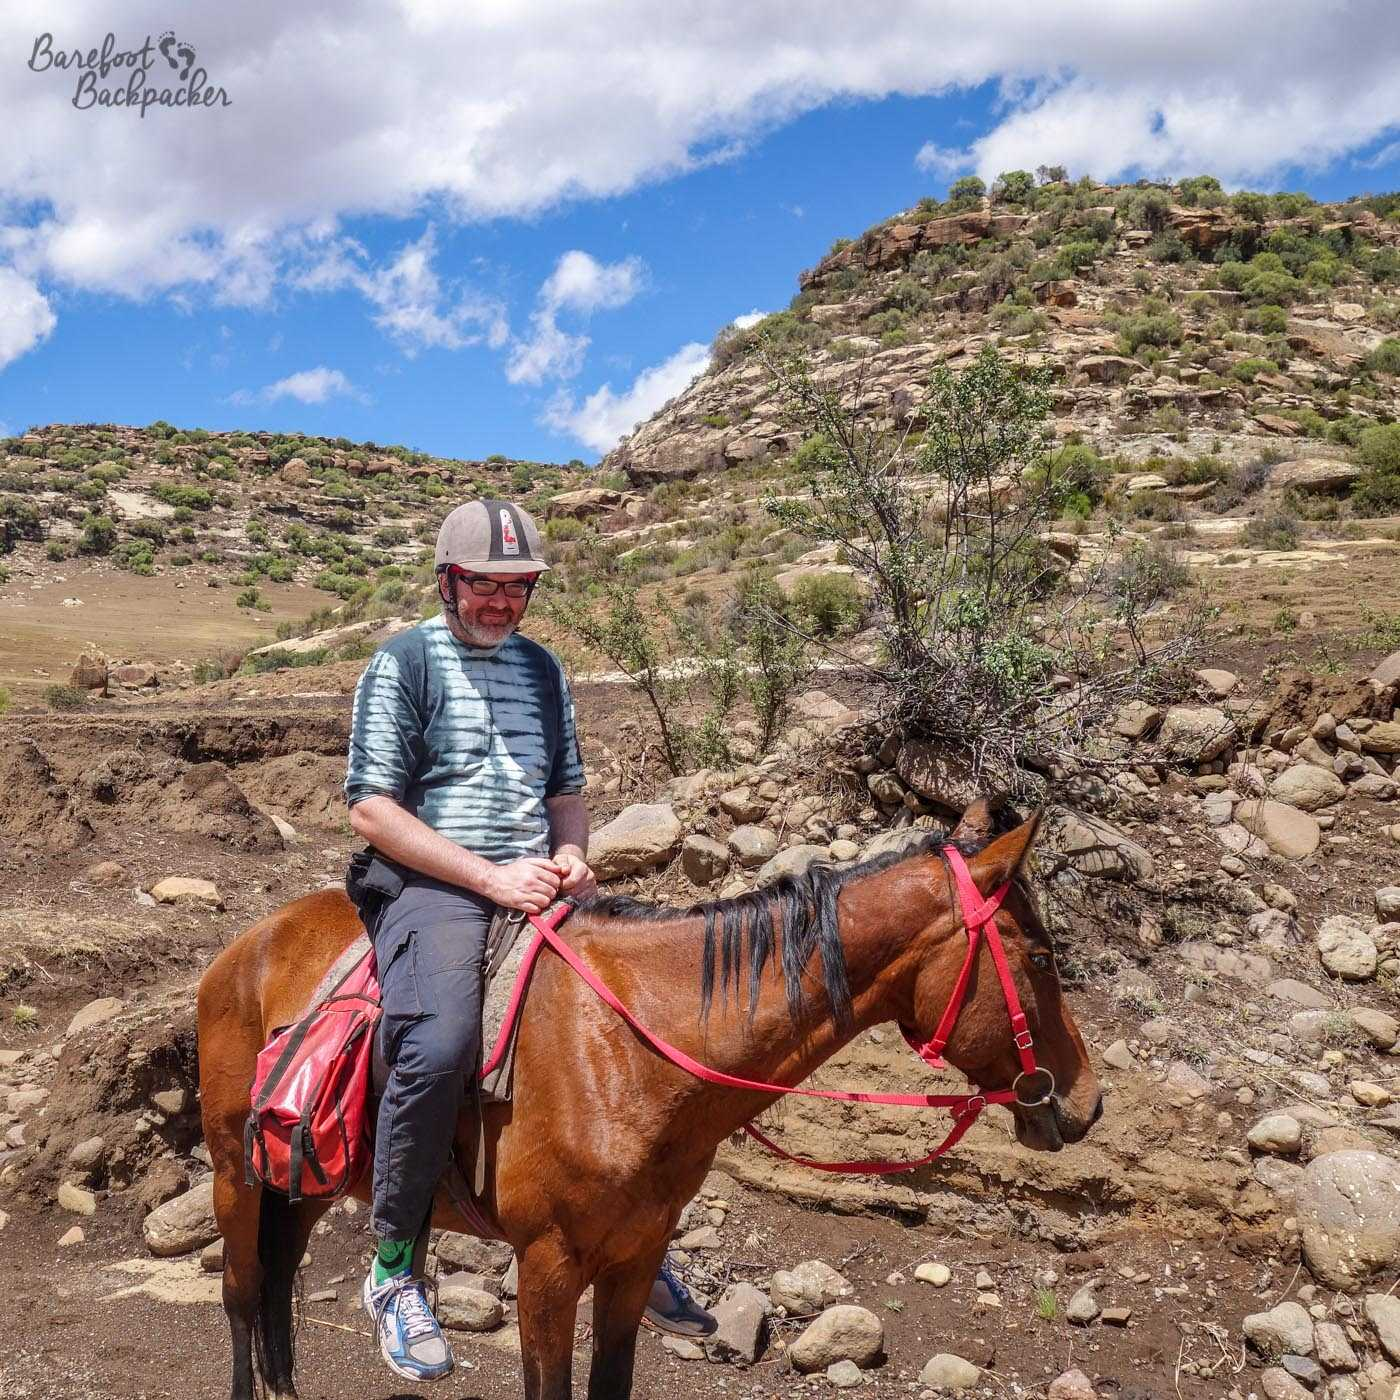 The Barefoot Backpacker, not barefoot, doesn't look entirely comfortable on top of a pony in the Lesotho rocky scenery. He is not a cowboy.